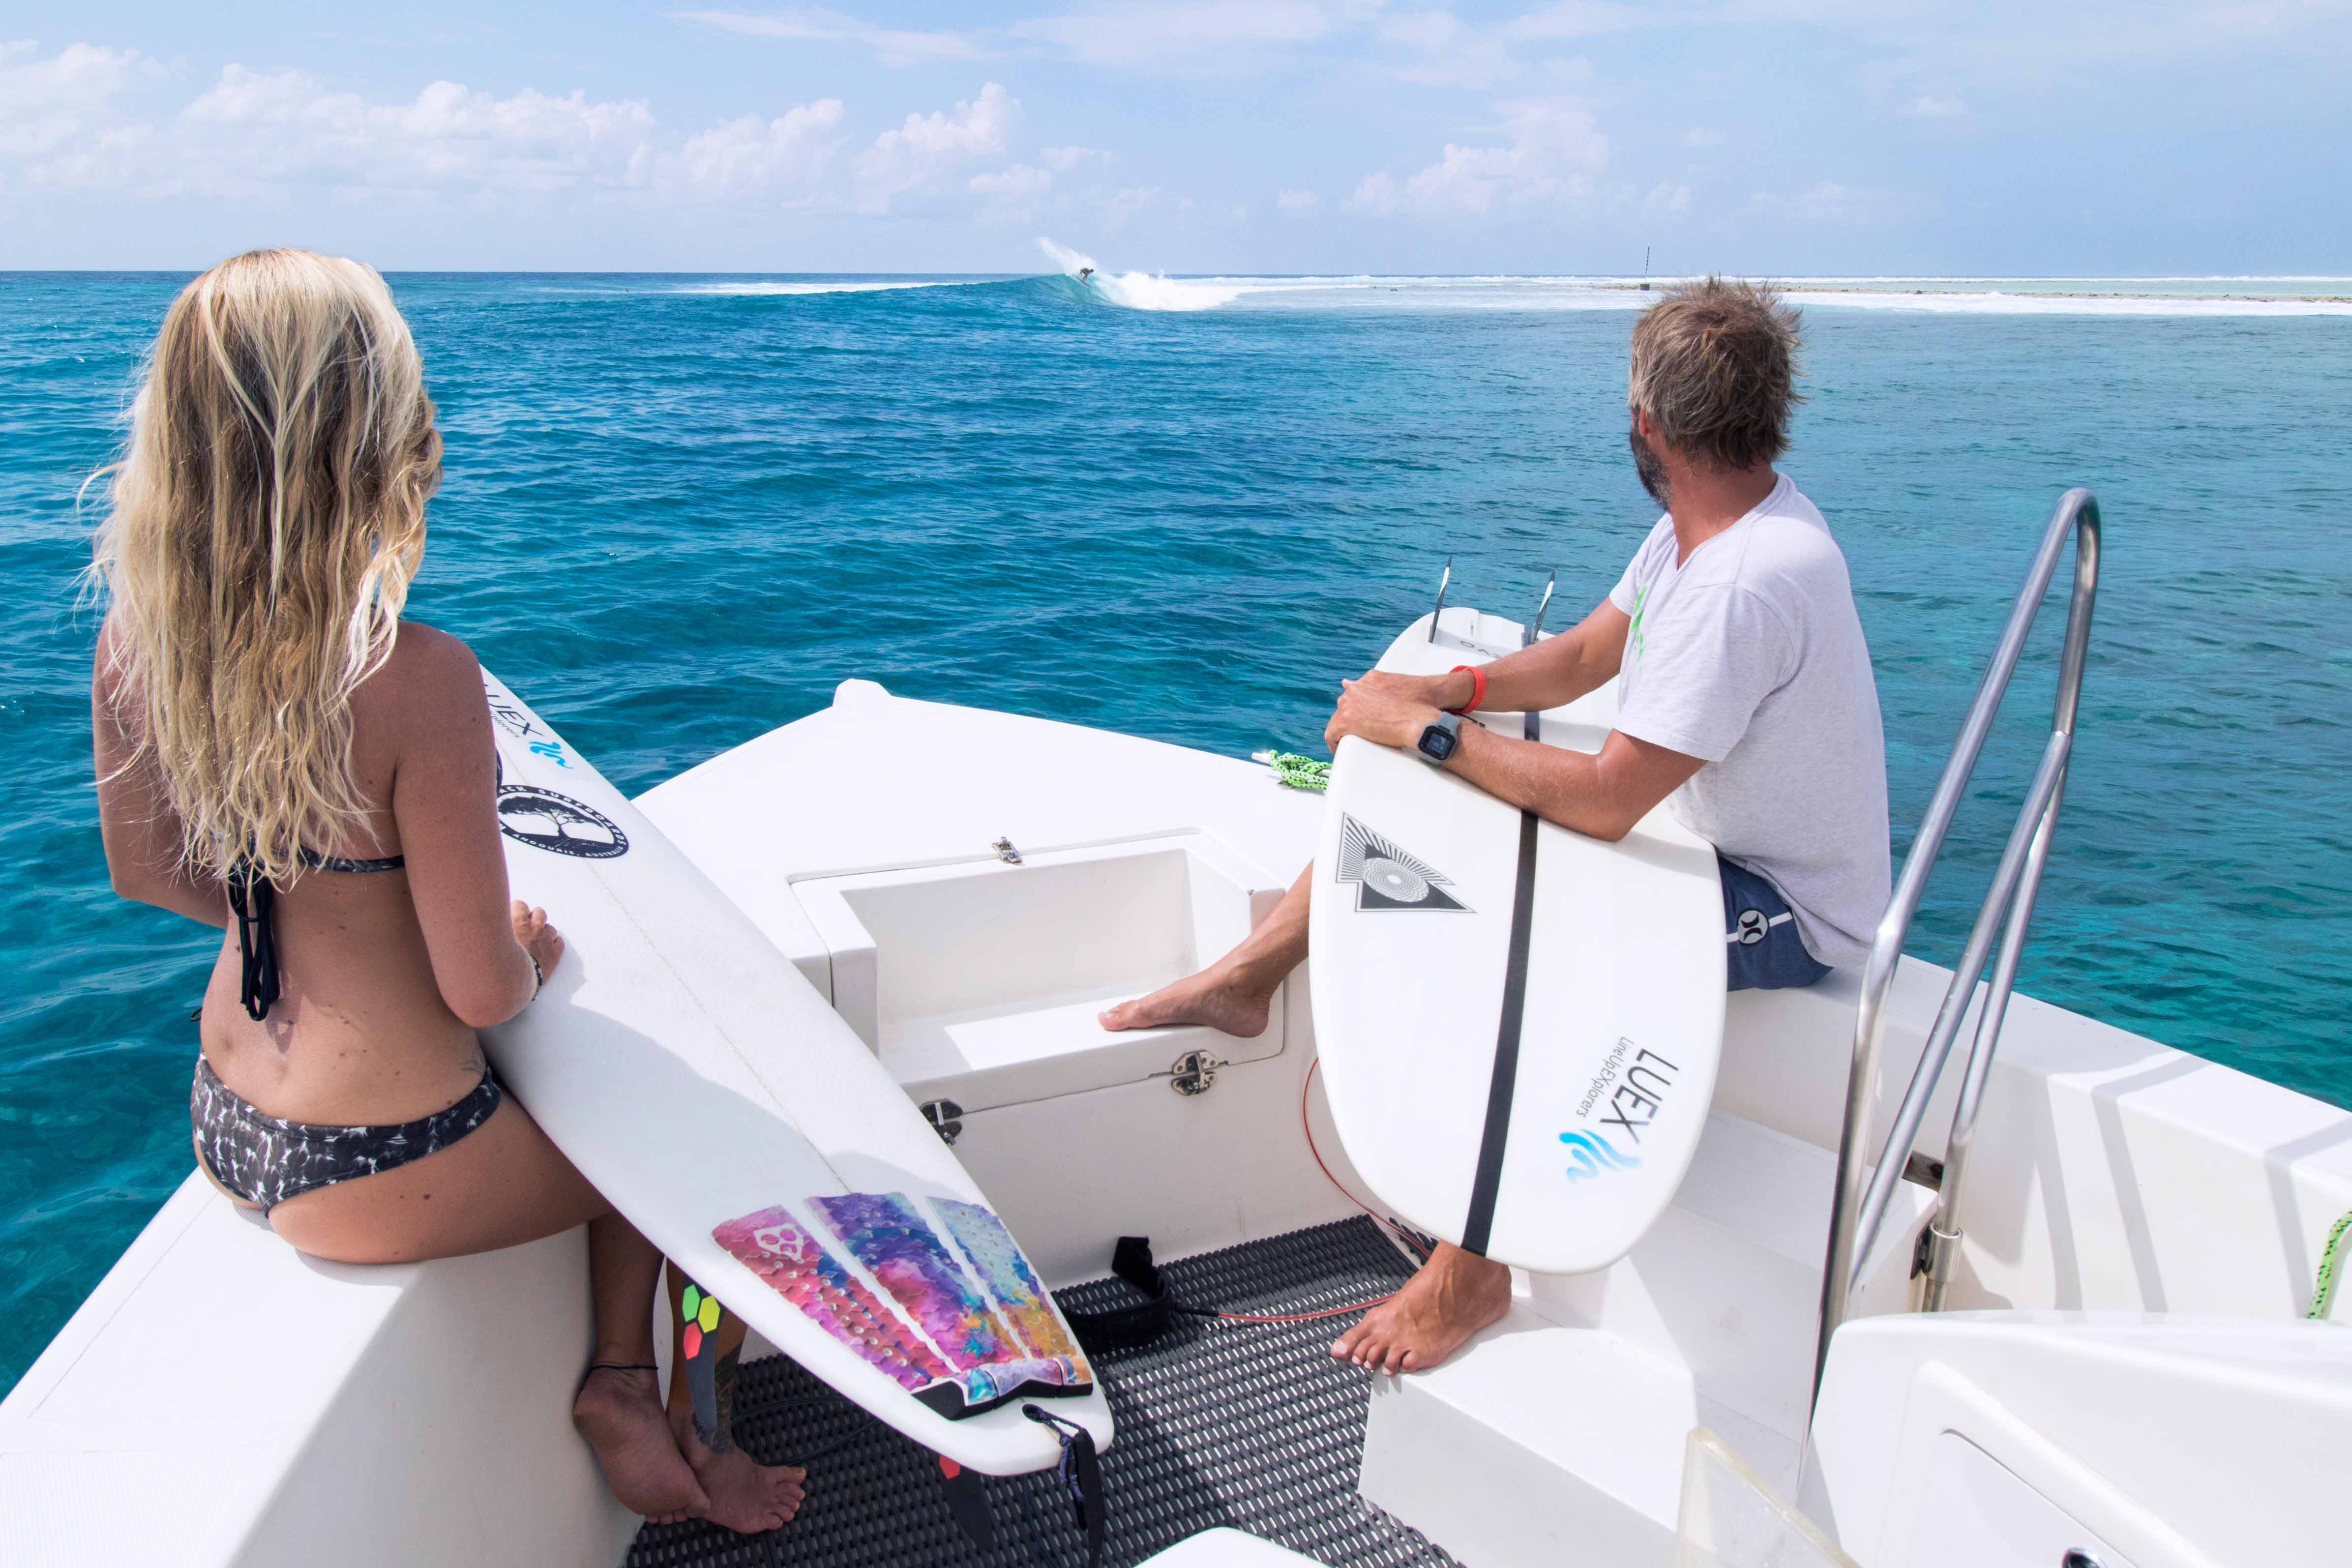 surf dhoni brings you close to the surf spot